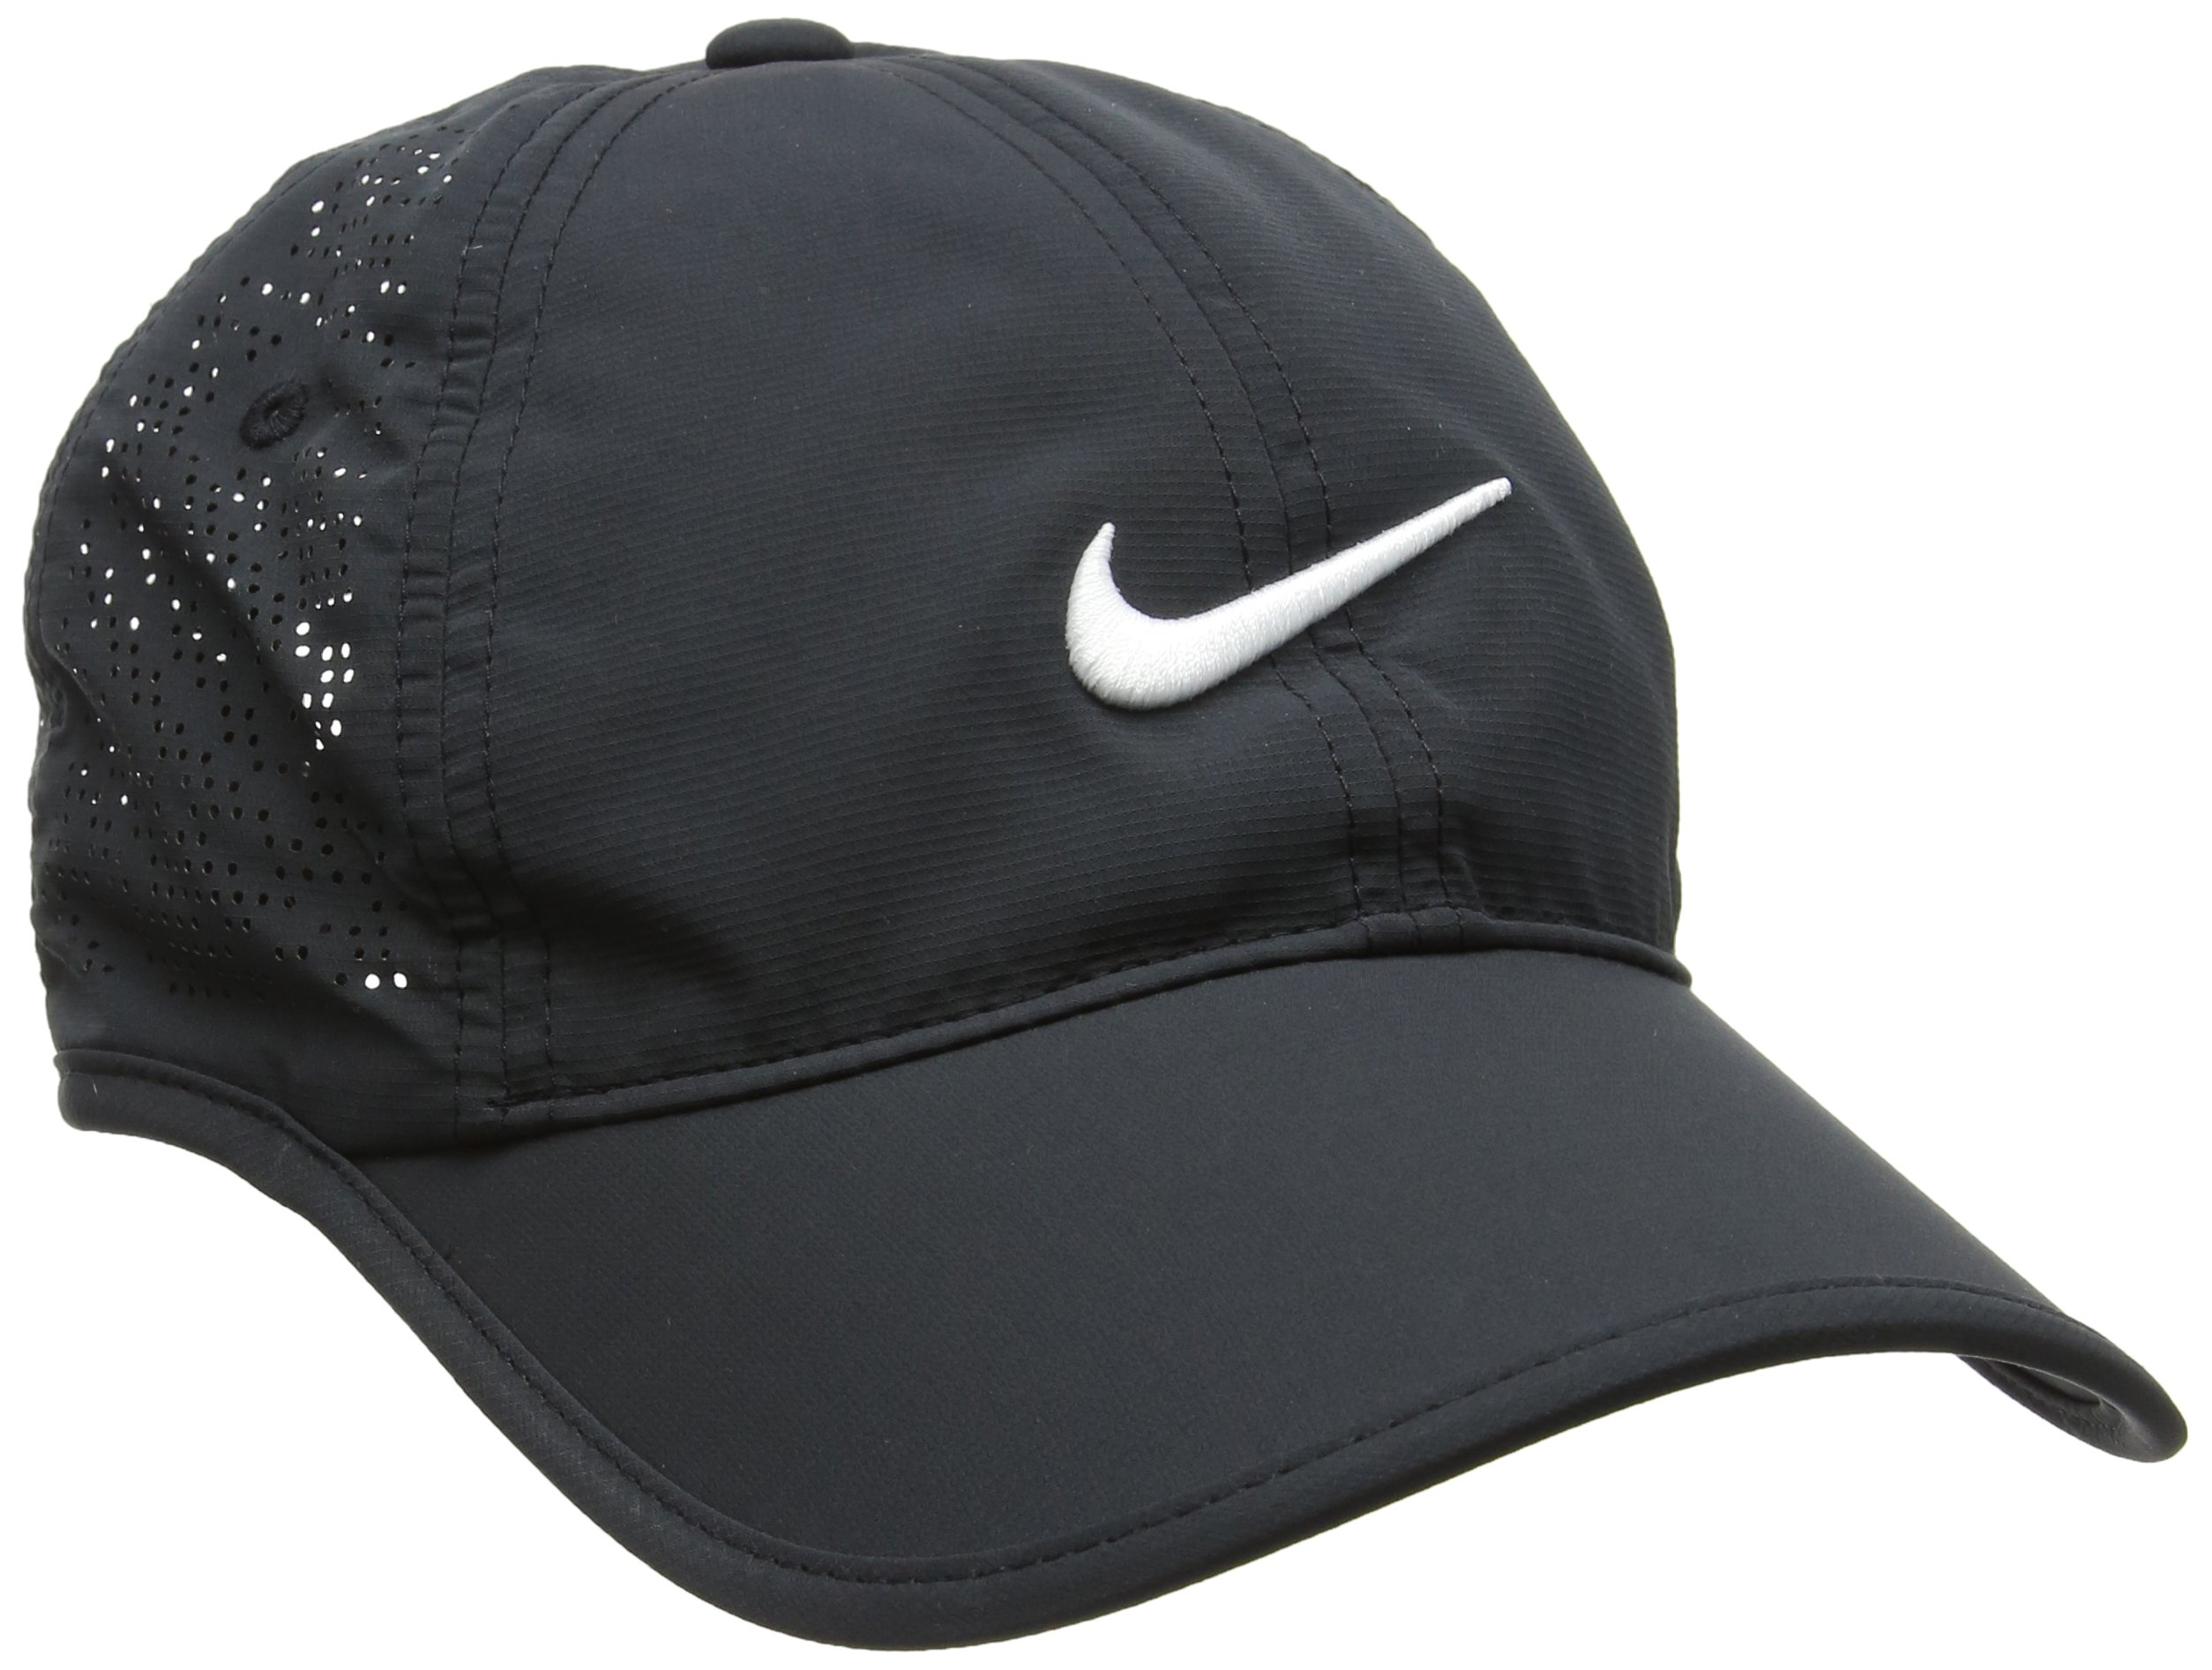 Nike Women's Perf Golf Cap (Black) Adjustable